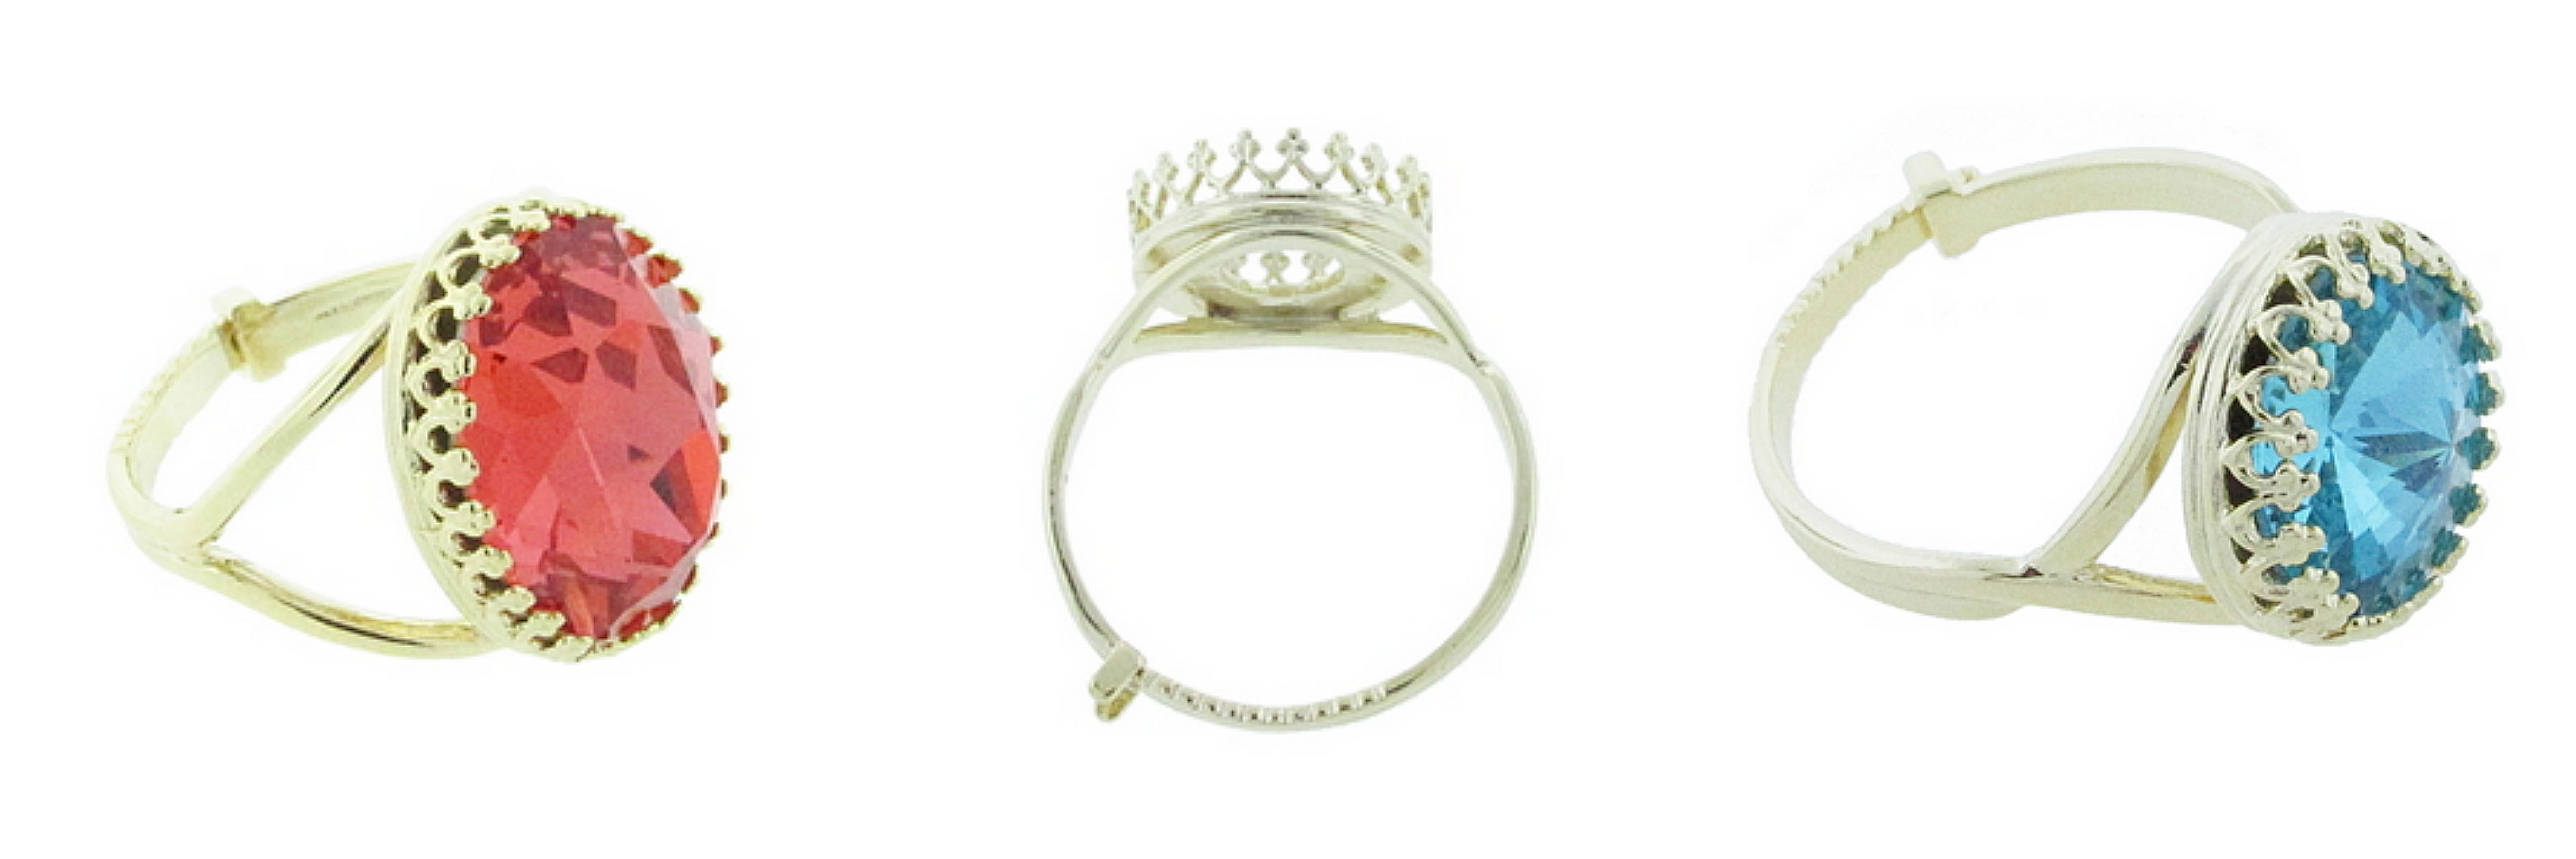 Crown Settings- Rings